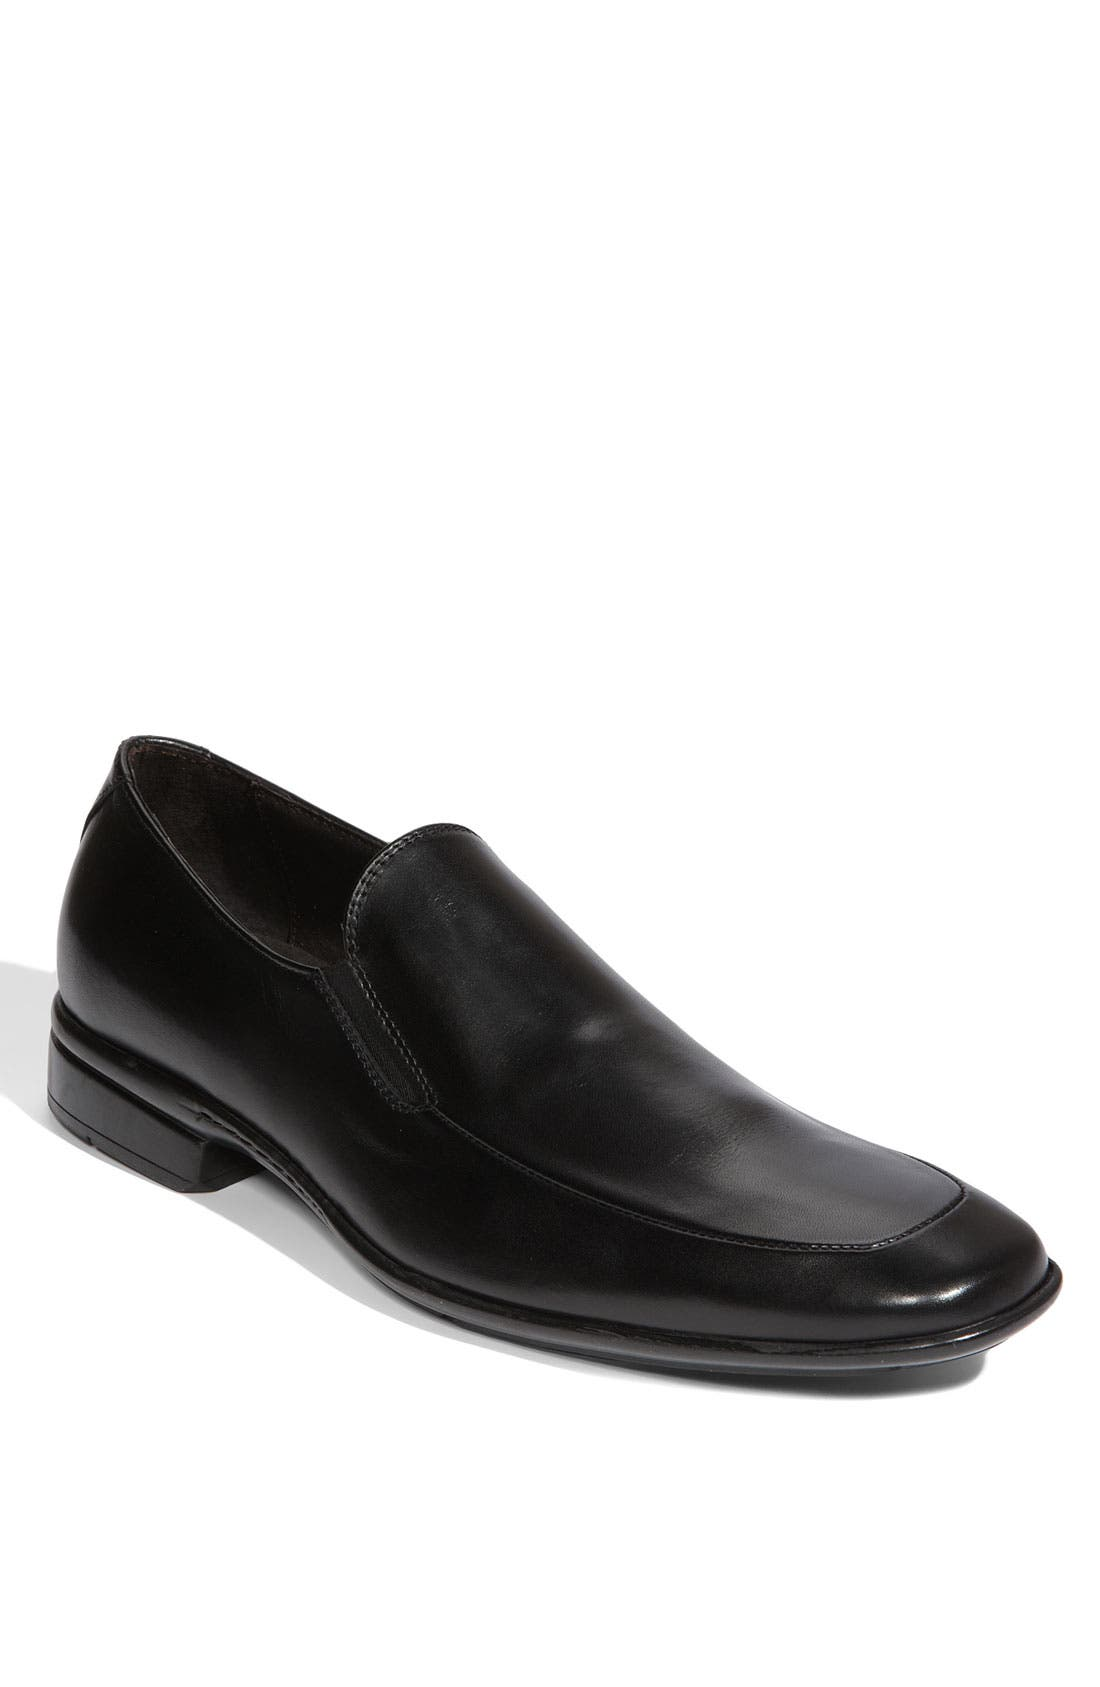 Main Image - To Boot New York 'Ross' Slip-On